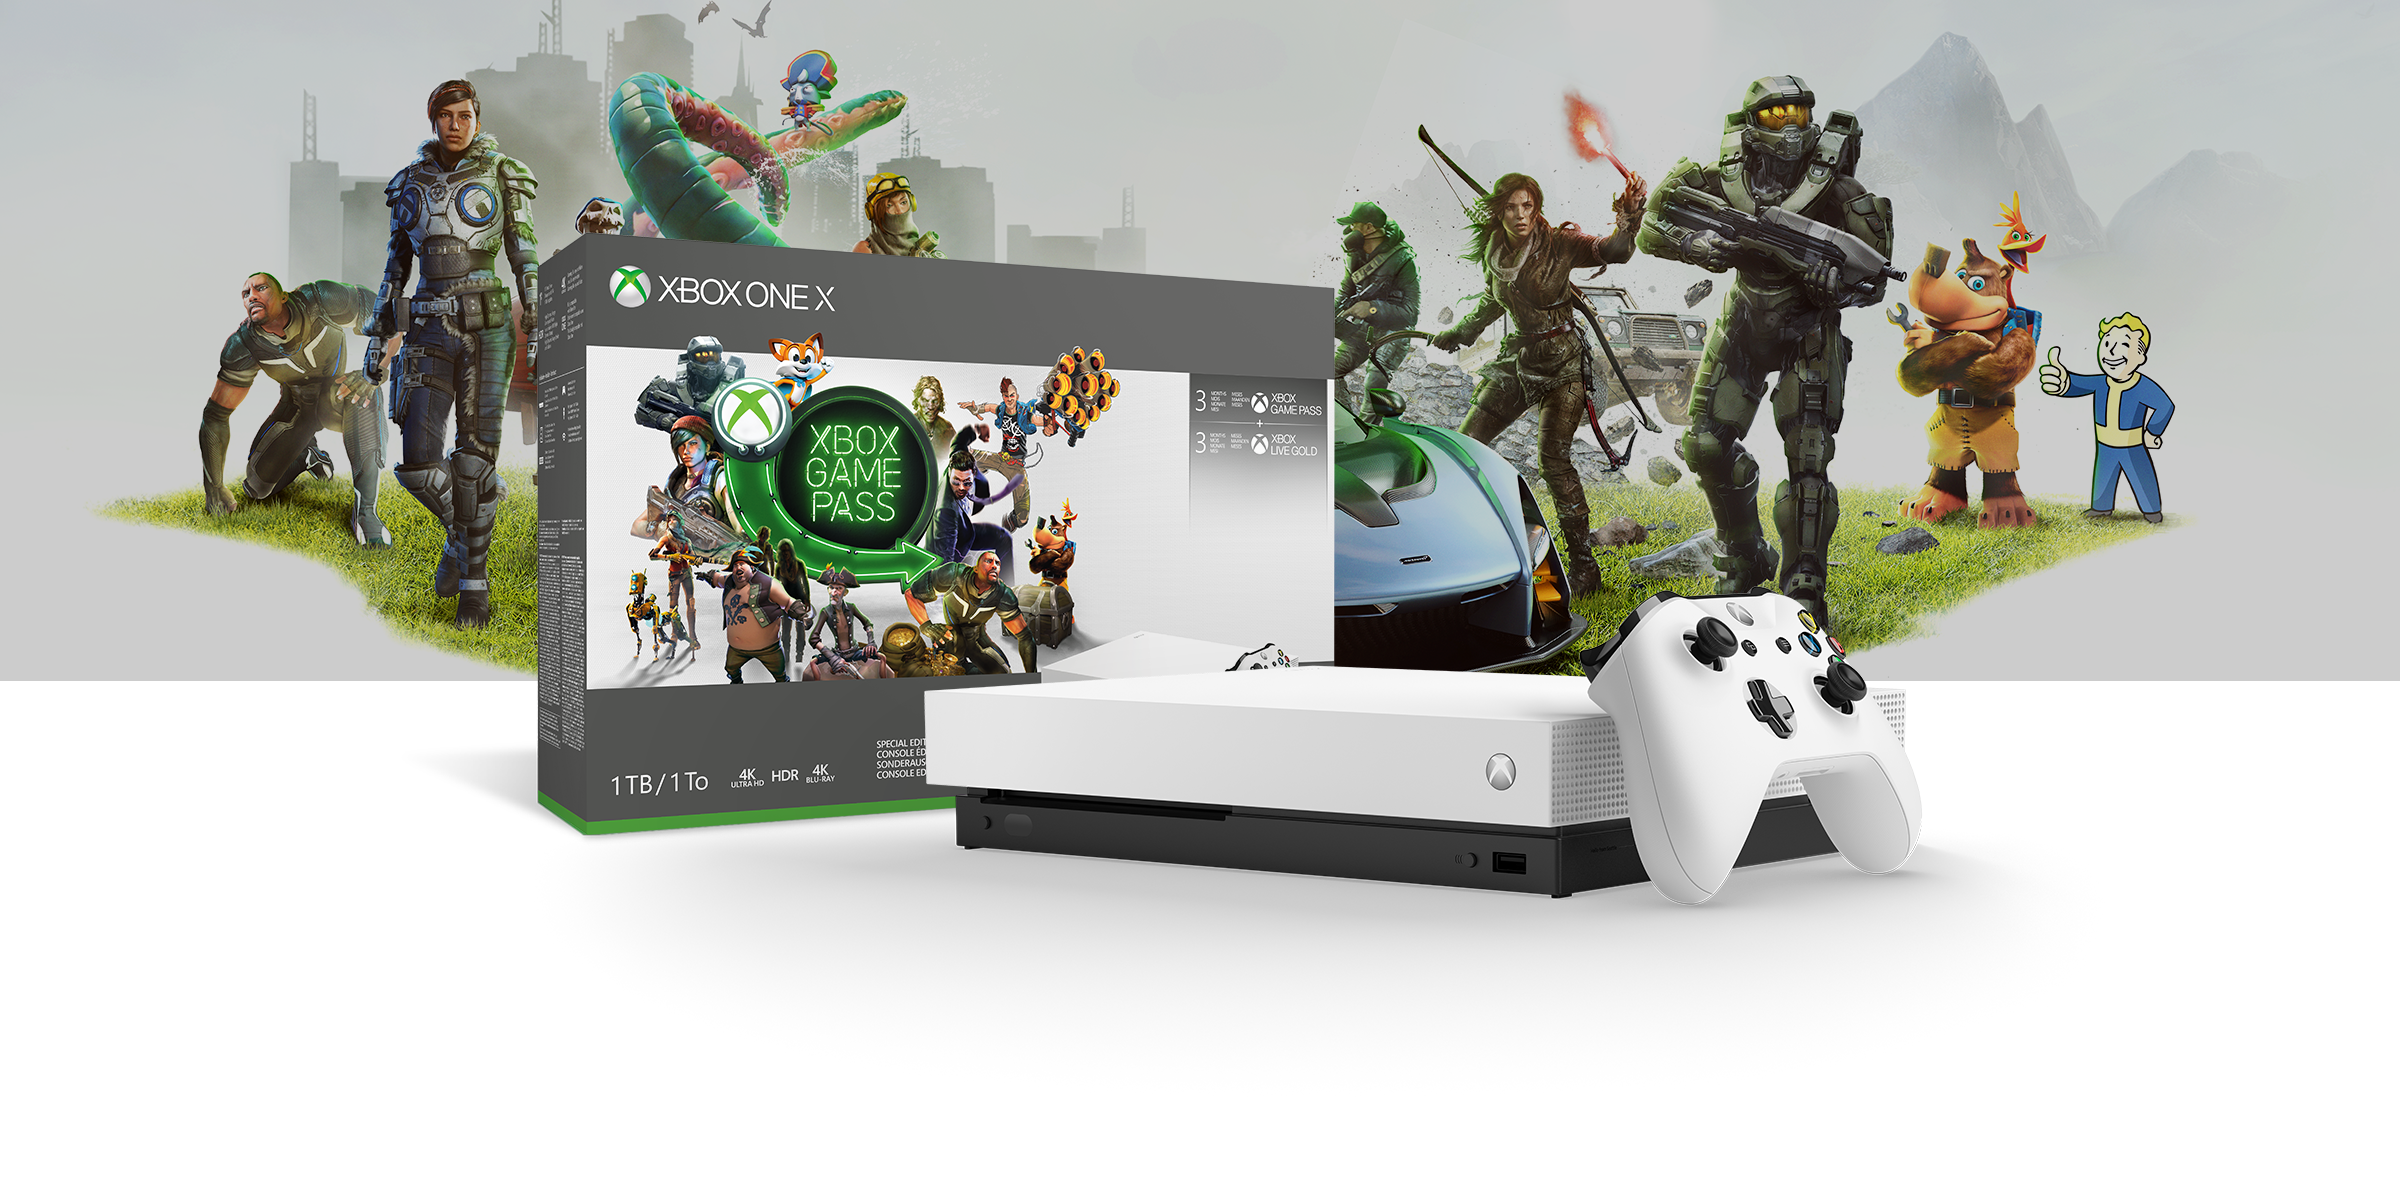 Xbox One X Robot White Special Edition console in front of a hardware bundle box featuring gamepass art